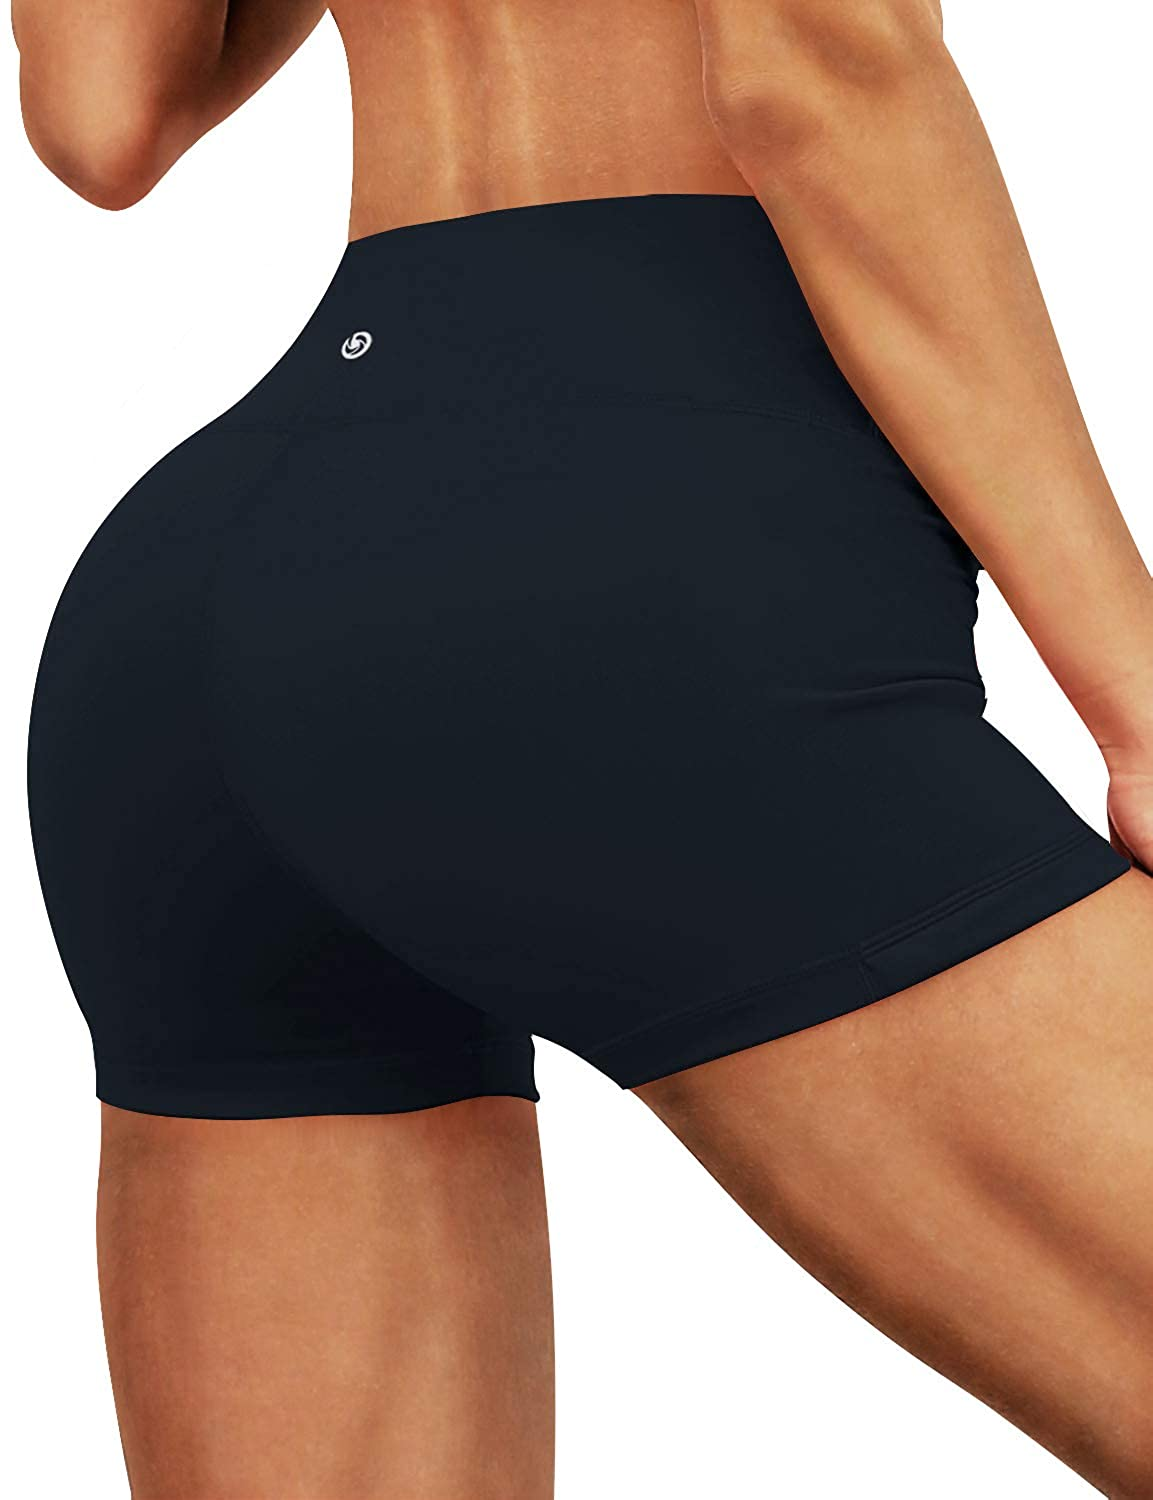 Darknavy(2.5  Inner Pocket) BUBBLELIME 2.5   4  Inseam Out Pocket Yoga Shorts Running Shorts Active